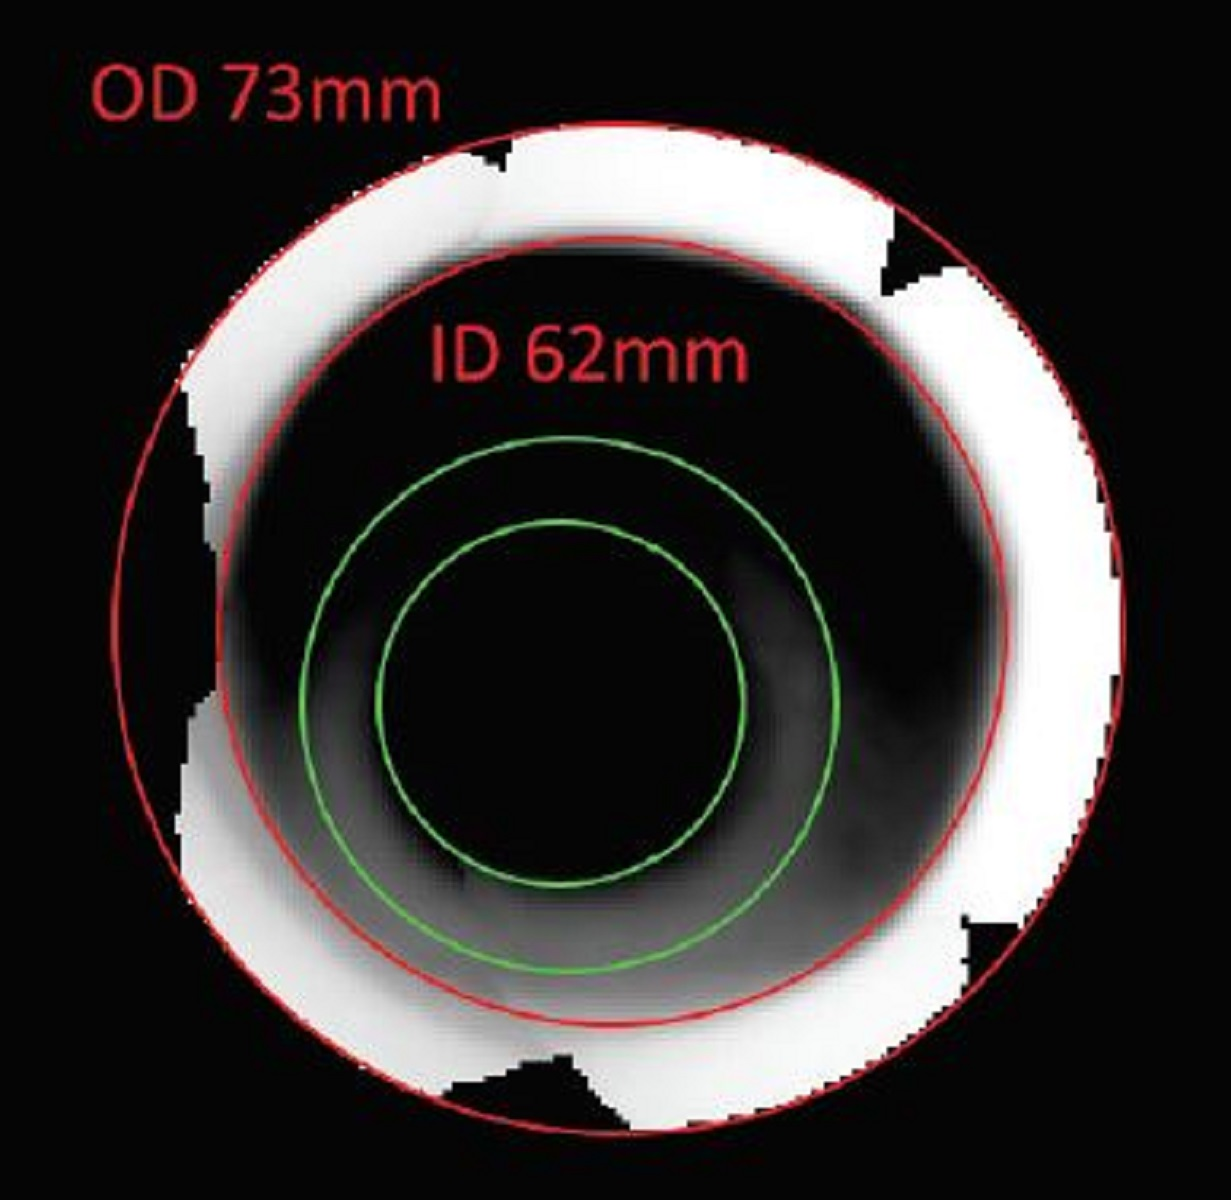 coiled tubing disconnect 2D xray image measurements